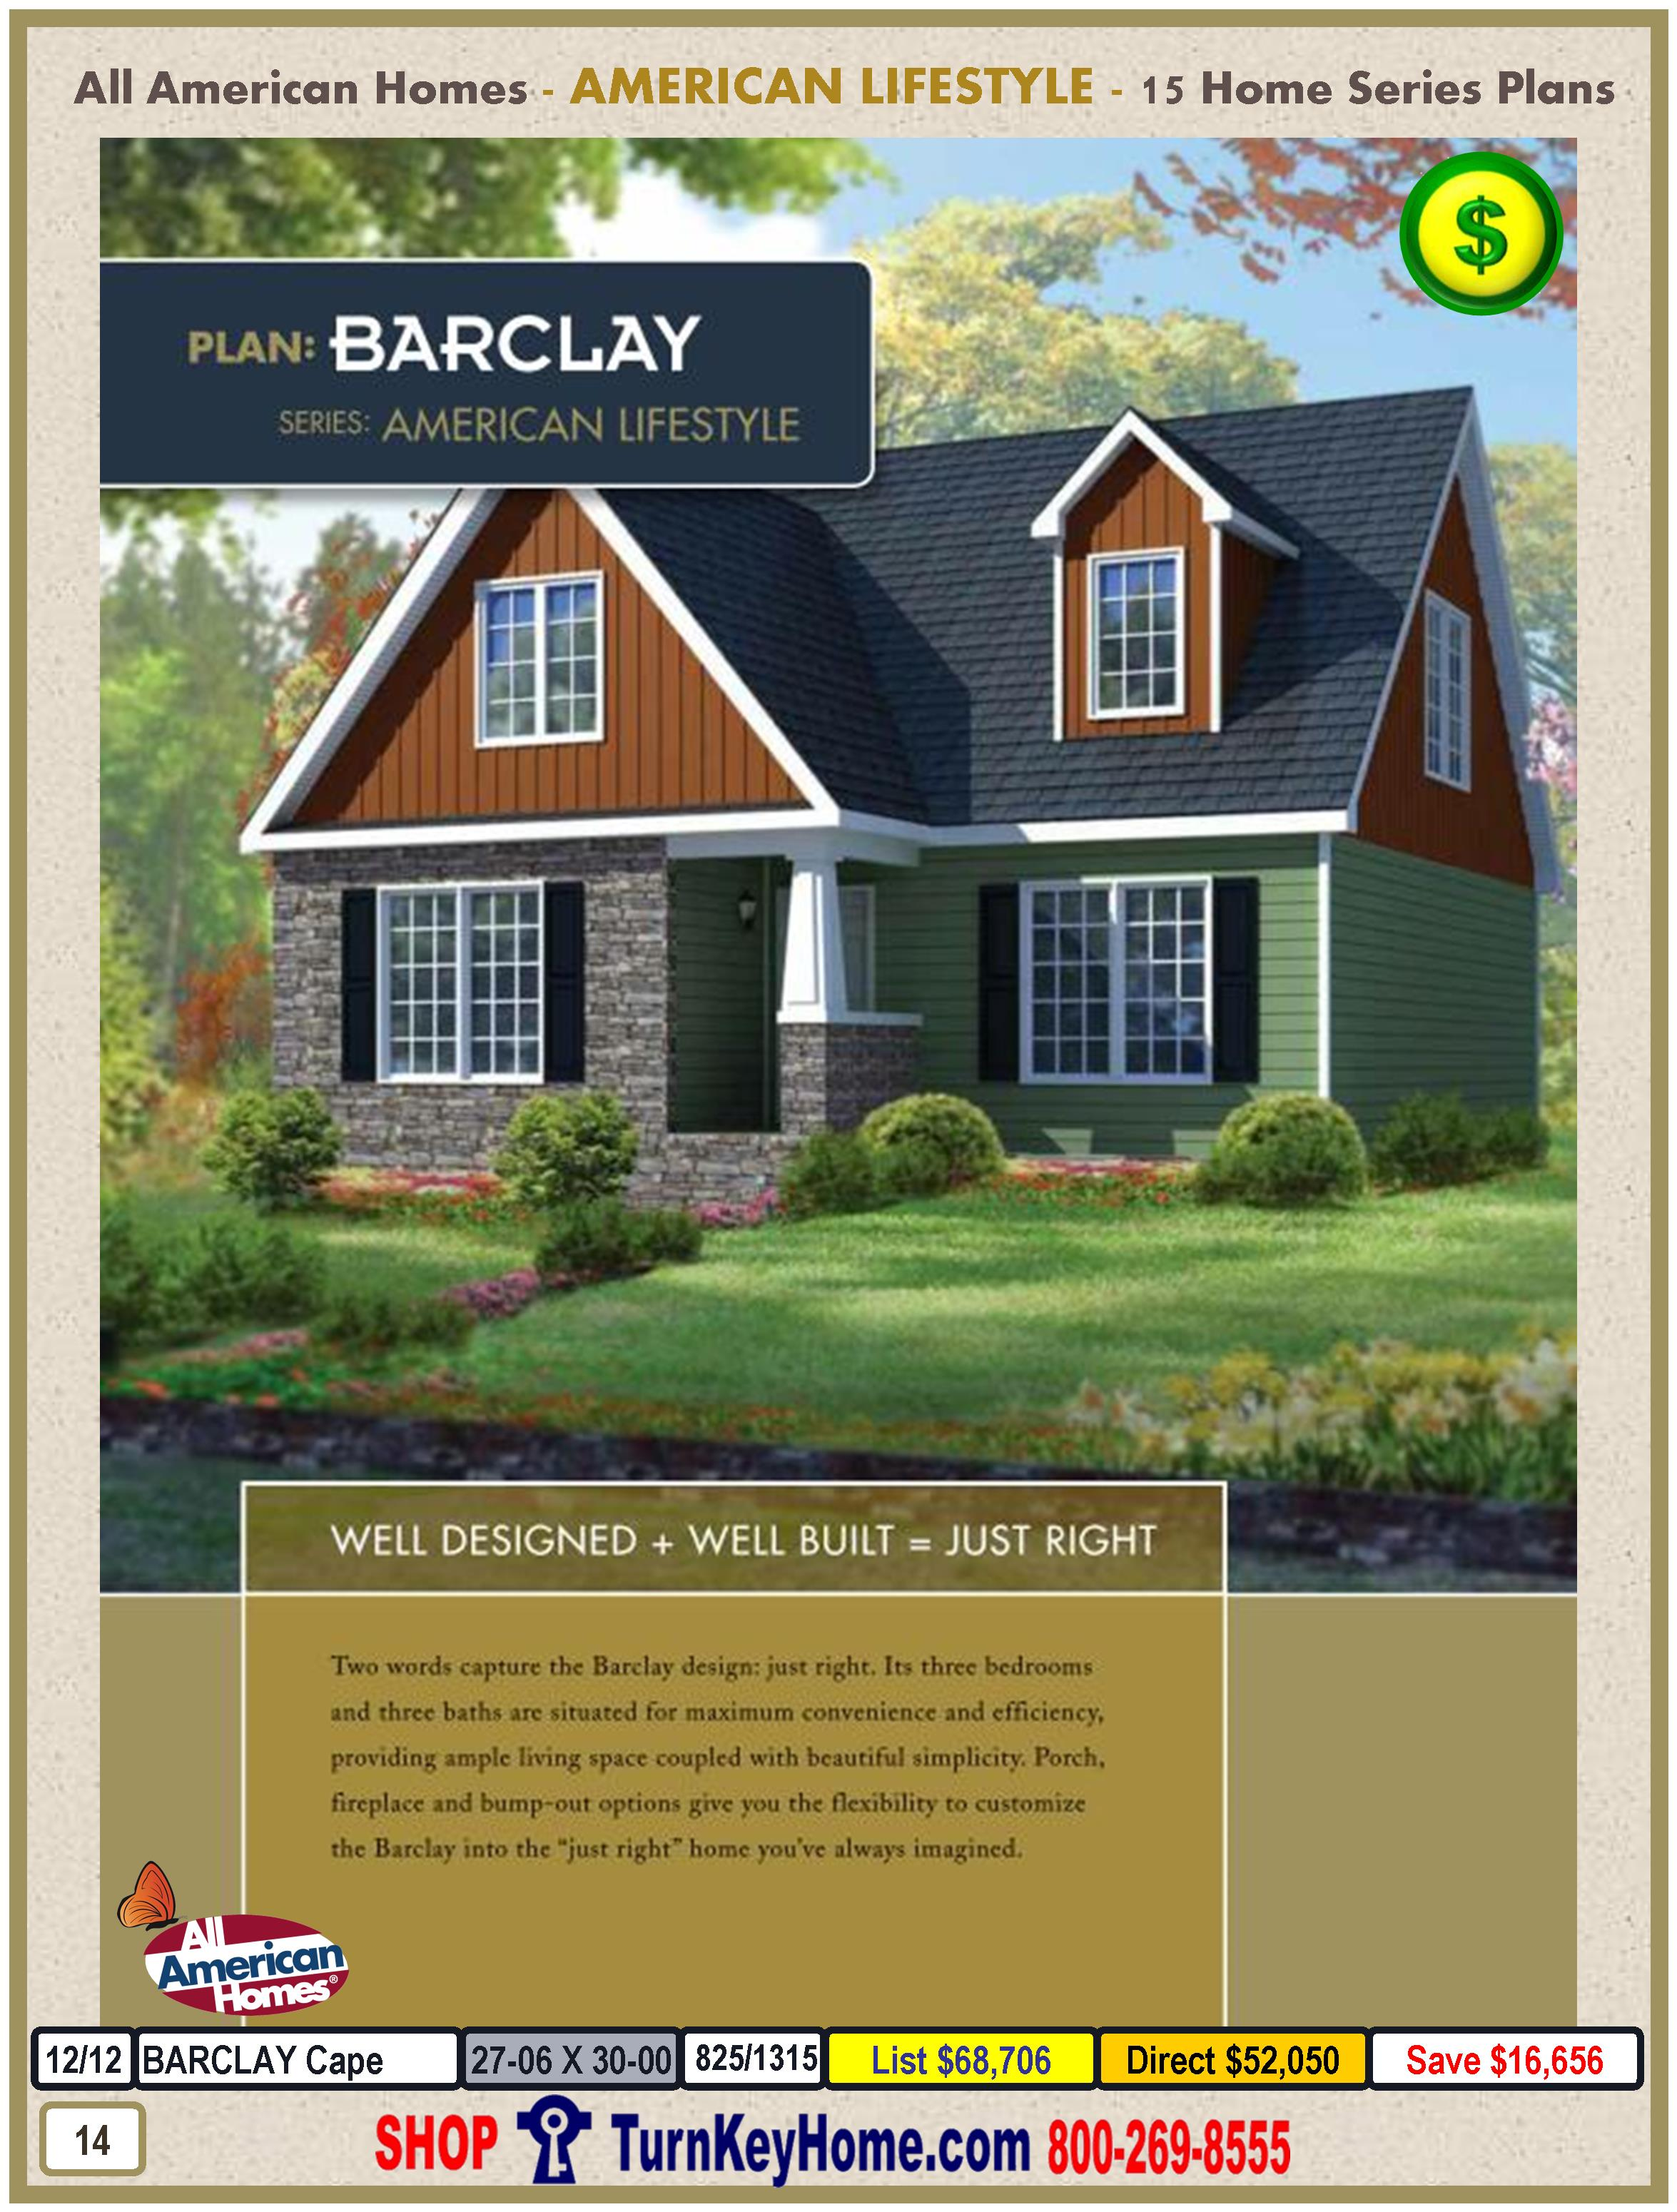 Attractive Modular Homes Plans From All American Homes American Lifestyles   Barclay  Home Design